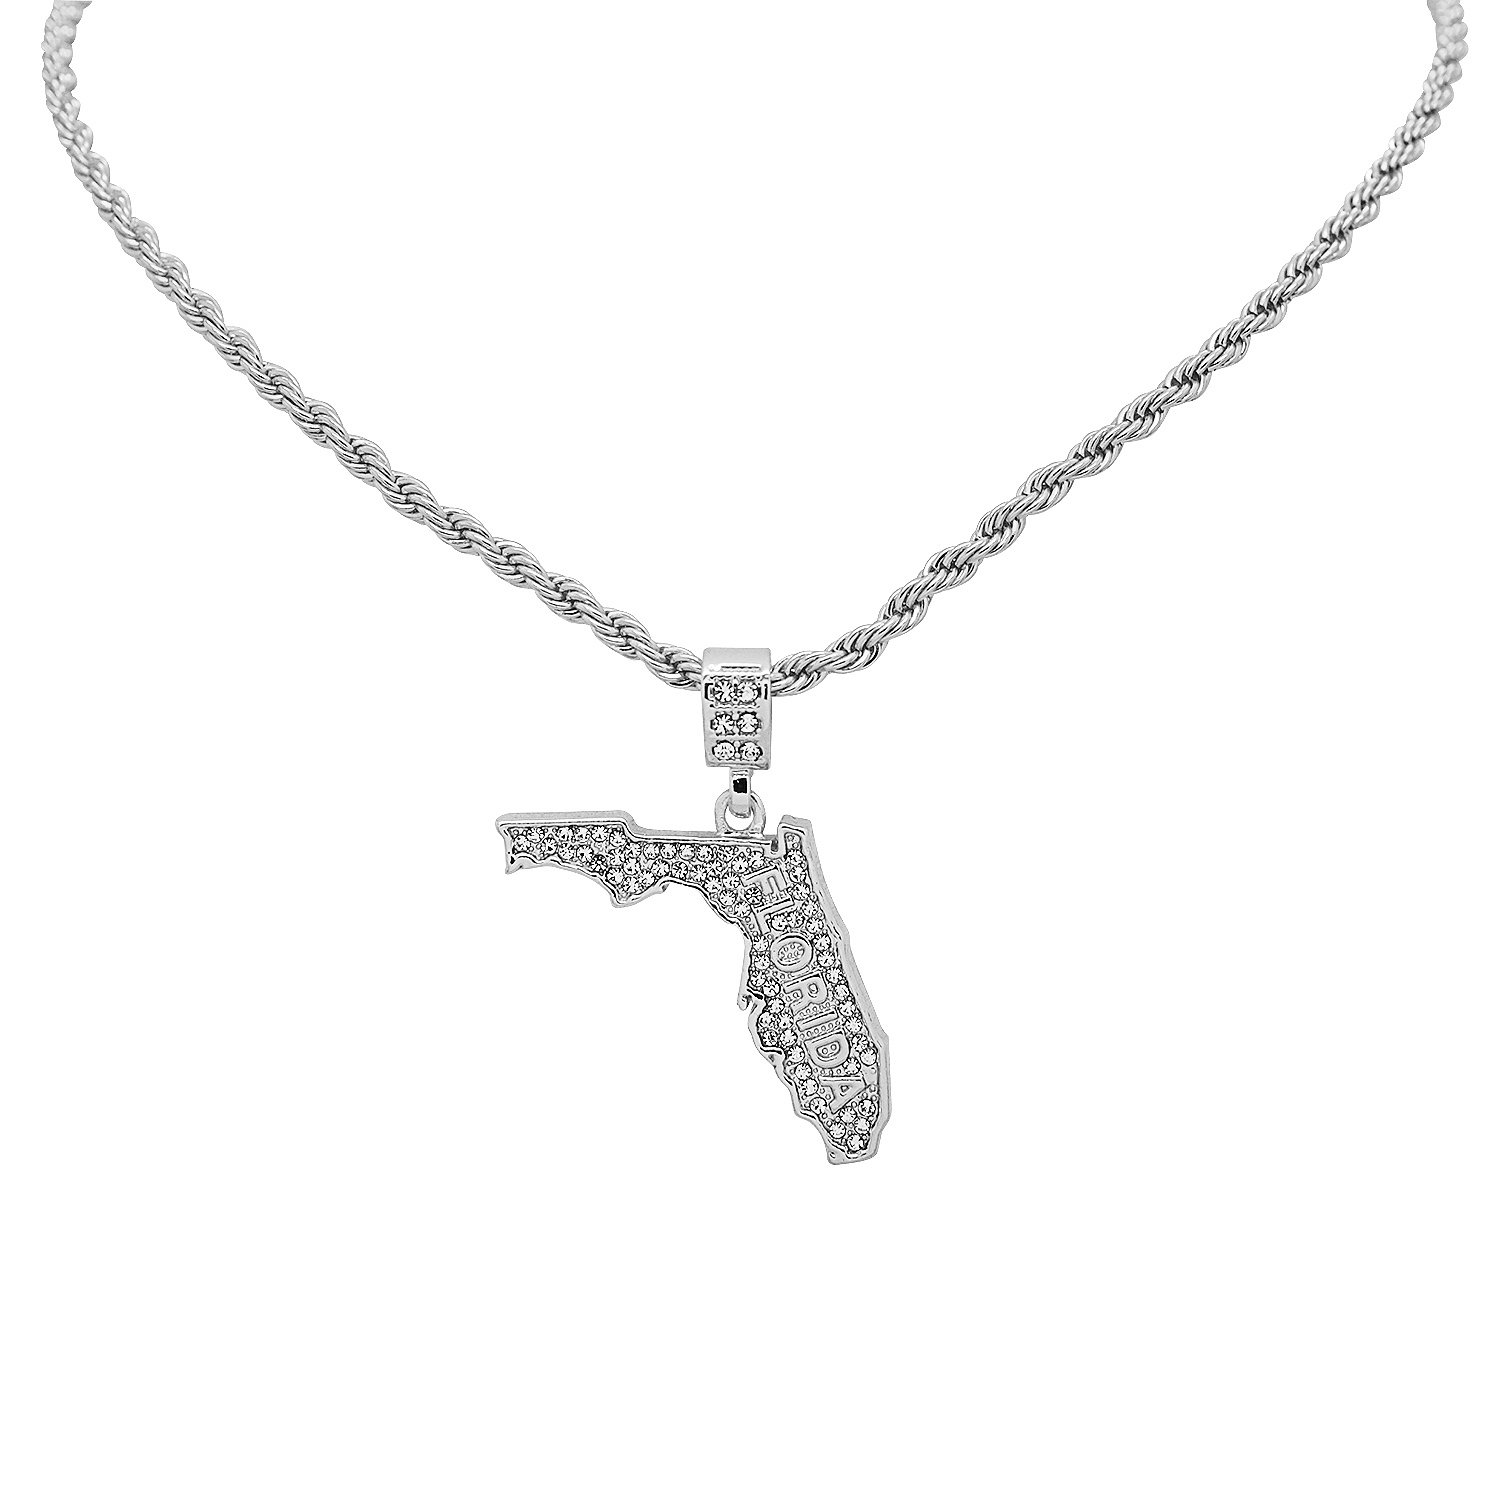 White Gold-Tone Hip Hop Bling Simulated Crystal The Sunshine State Florida Map Pendant with 20 Tennis Chain and 24 Rope Chain